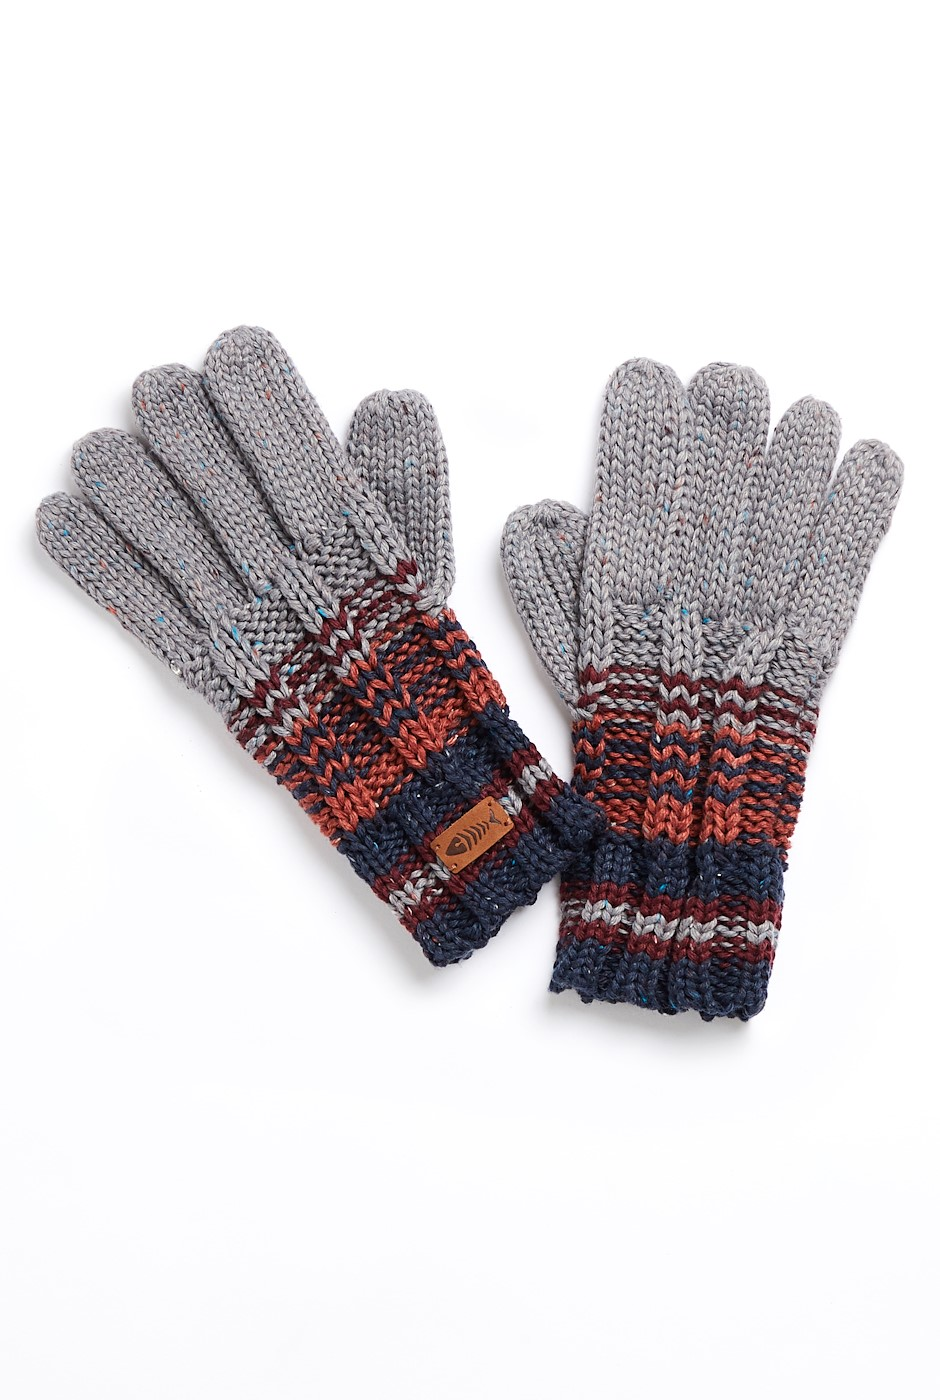 Munday Eco Variagated Striped Gloves Navy